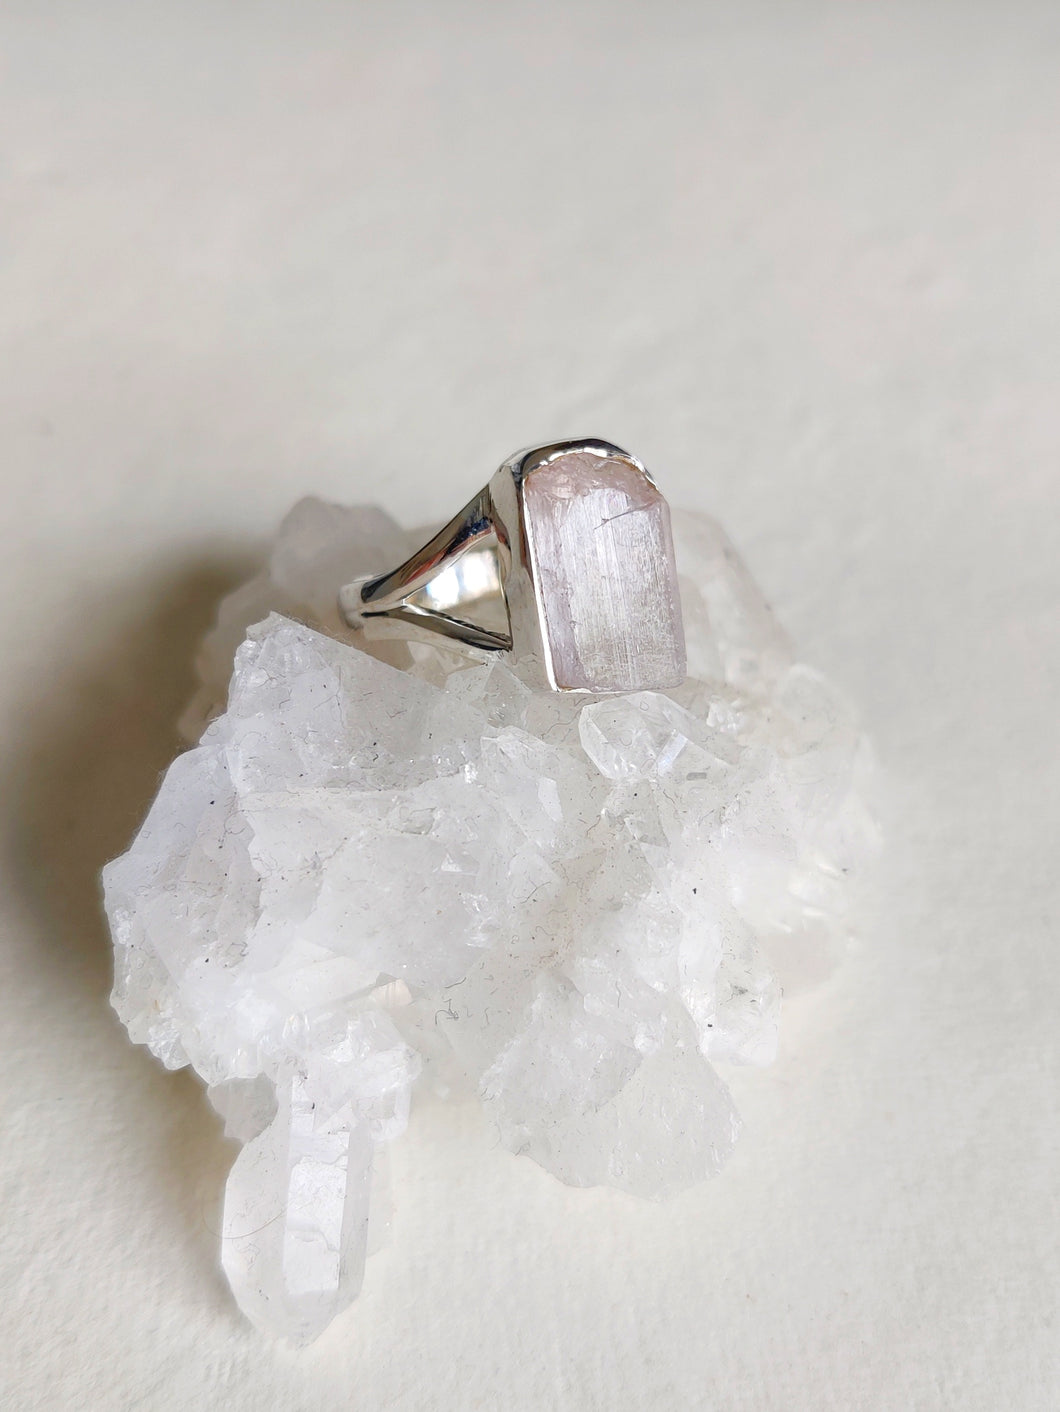 Rough Pink Kunzite Sterling Silver Ring - Size 7